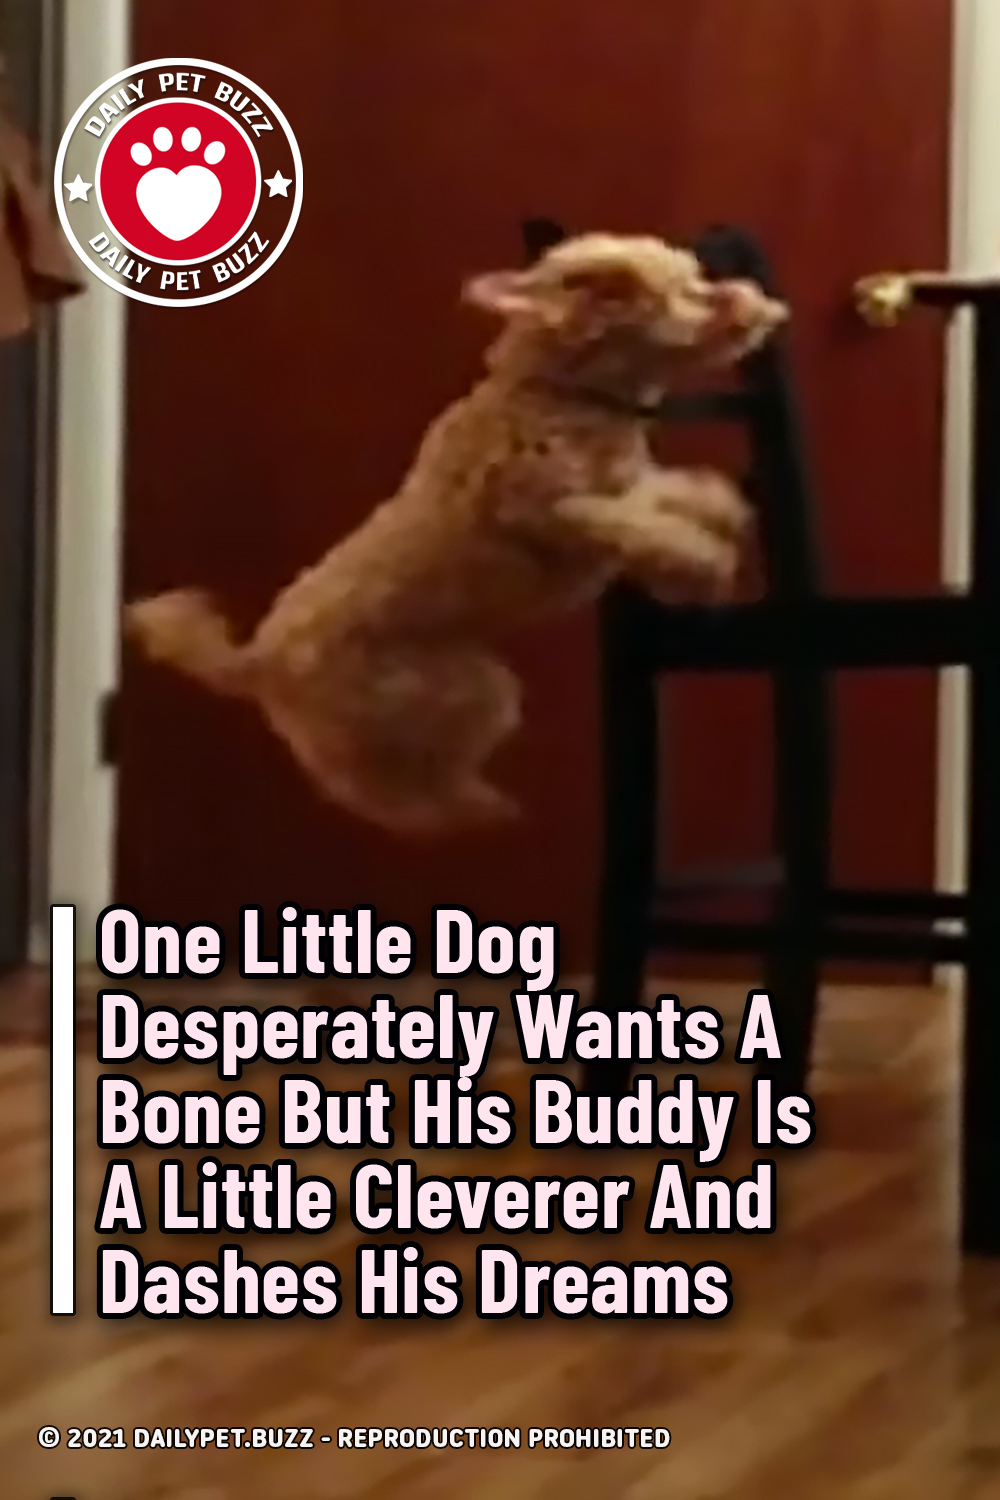 One Little Dog Desperately Wants A Bone But His Buddy Is A Little Cleverer And Dashes His Dreams